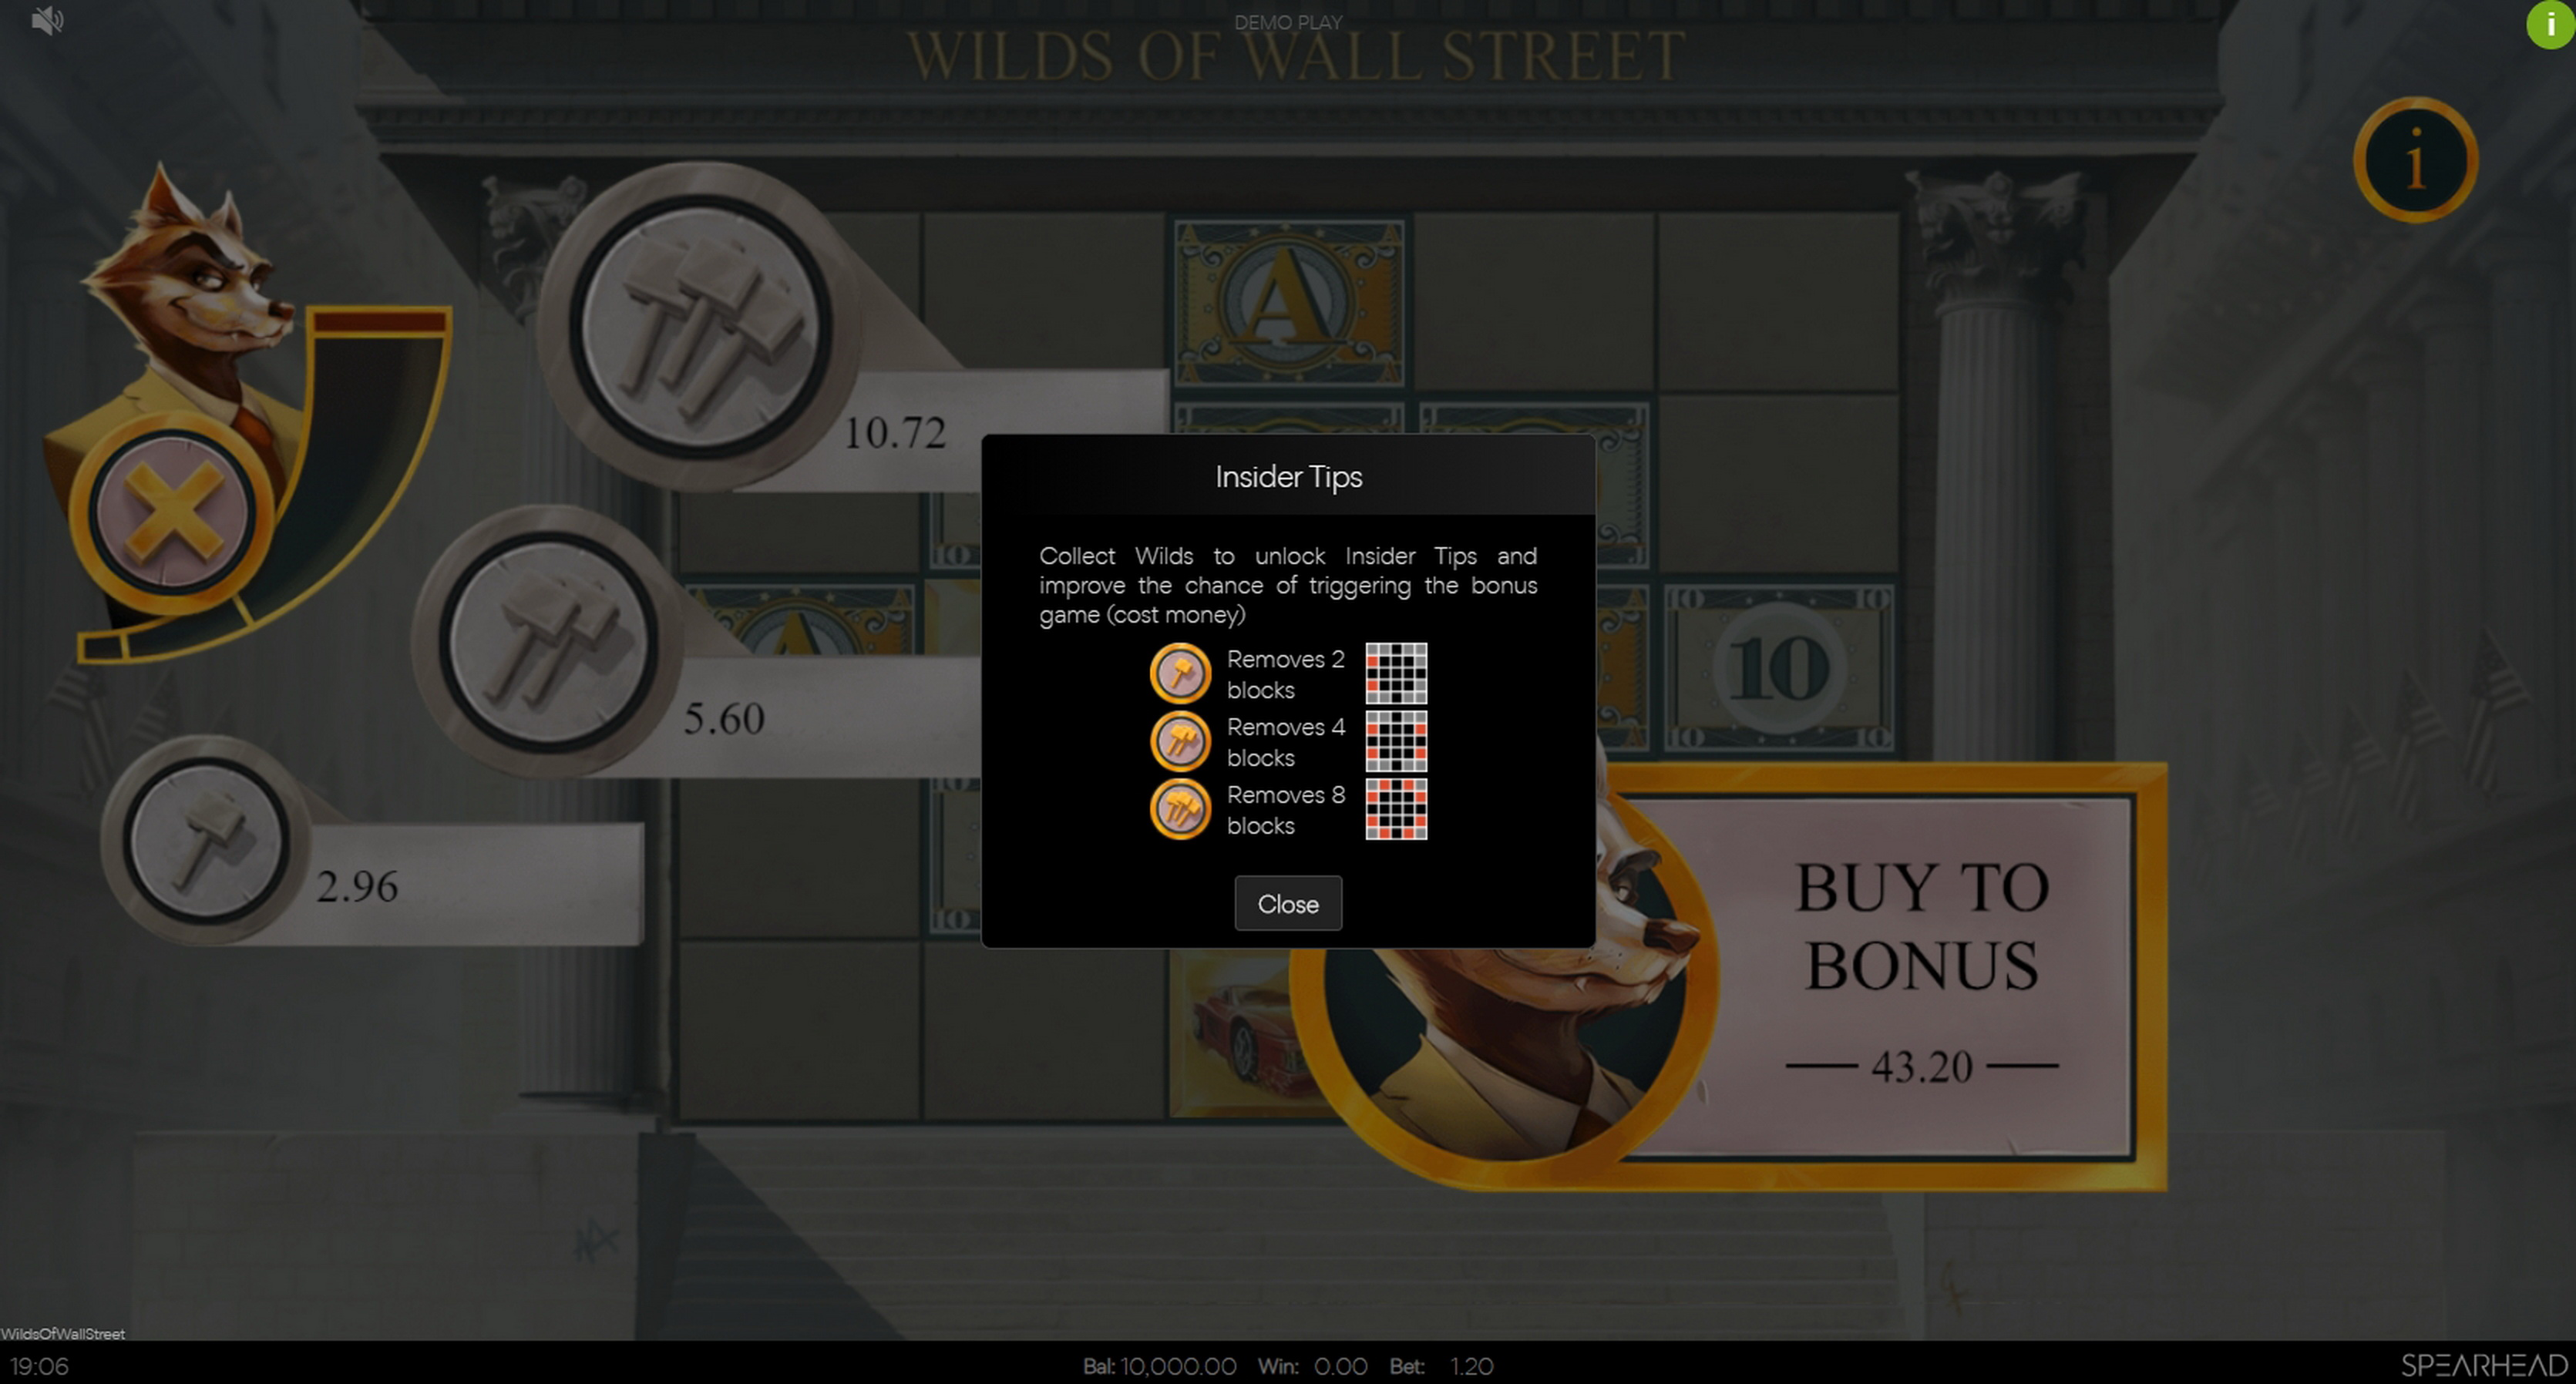 Info of Wilds of Wall Street Slot Game by Spearhead Studios